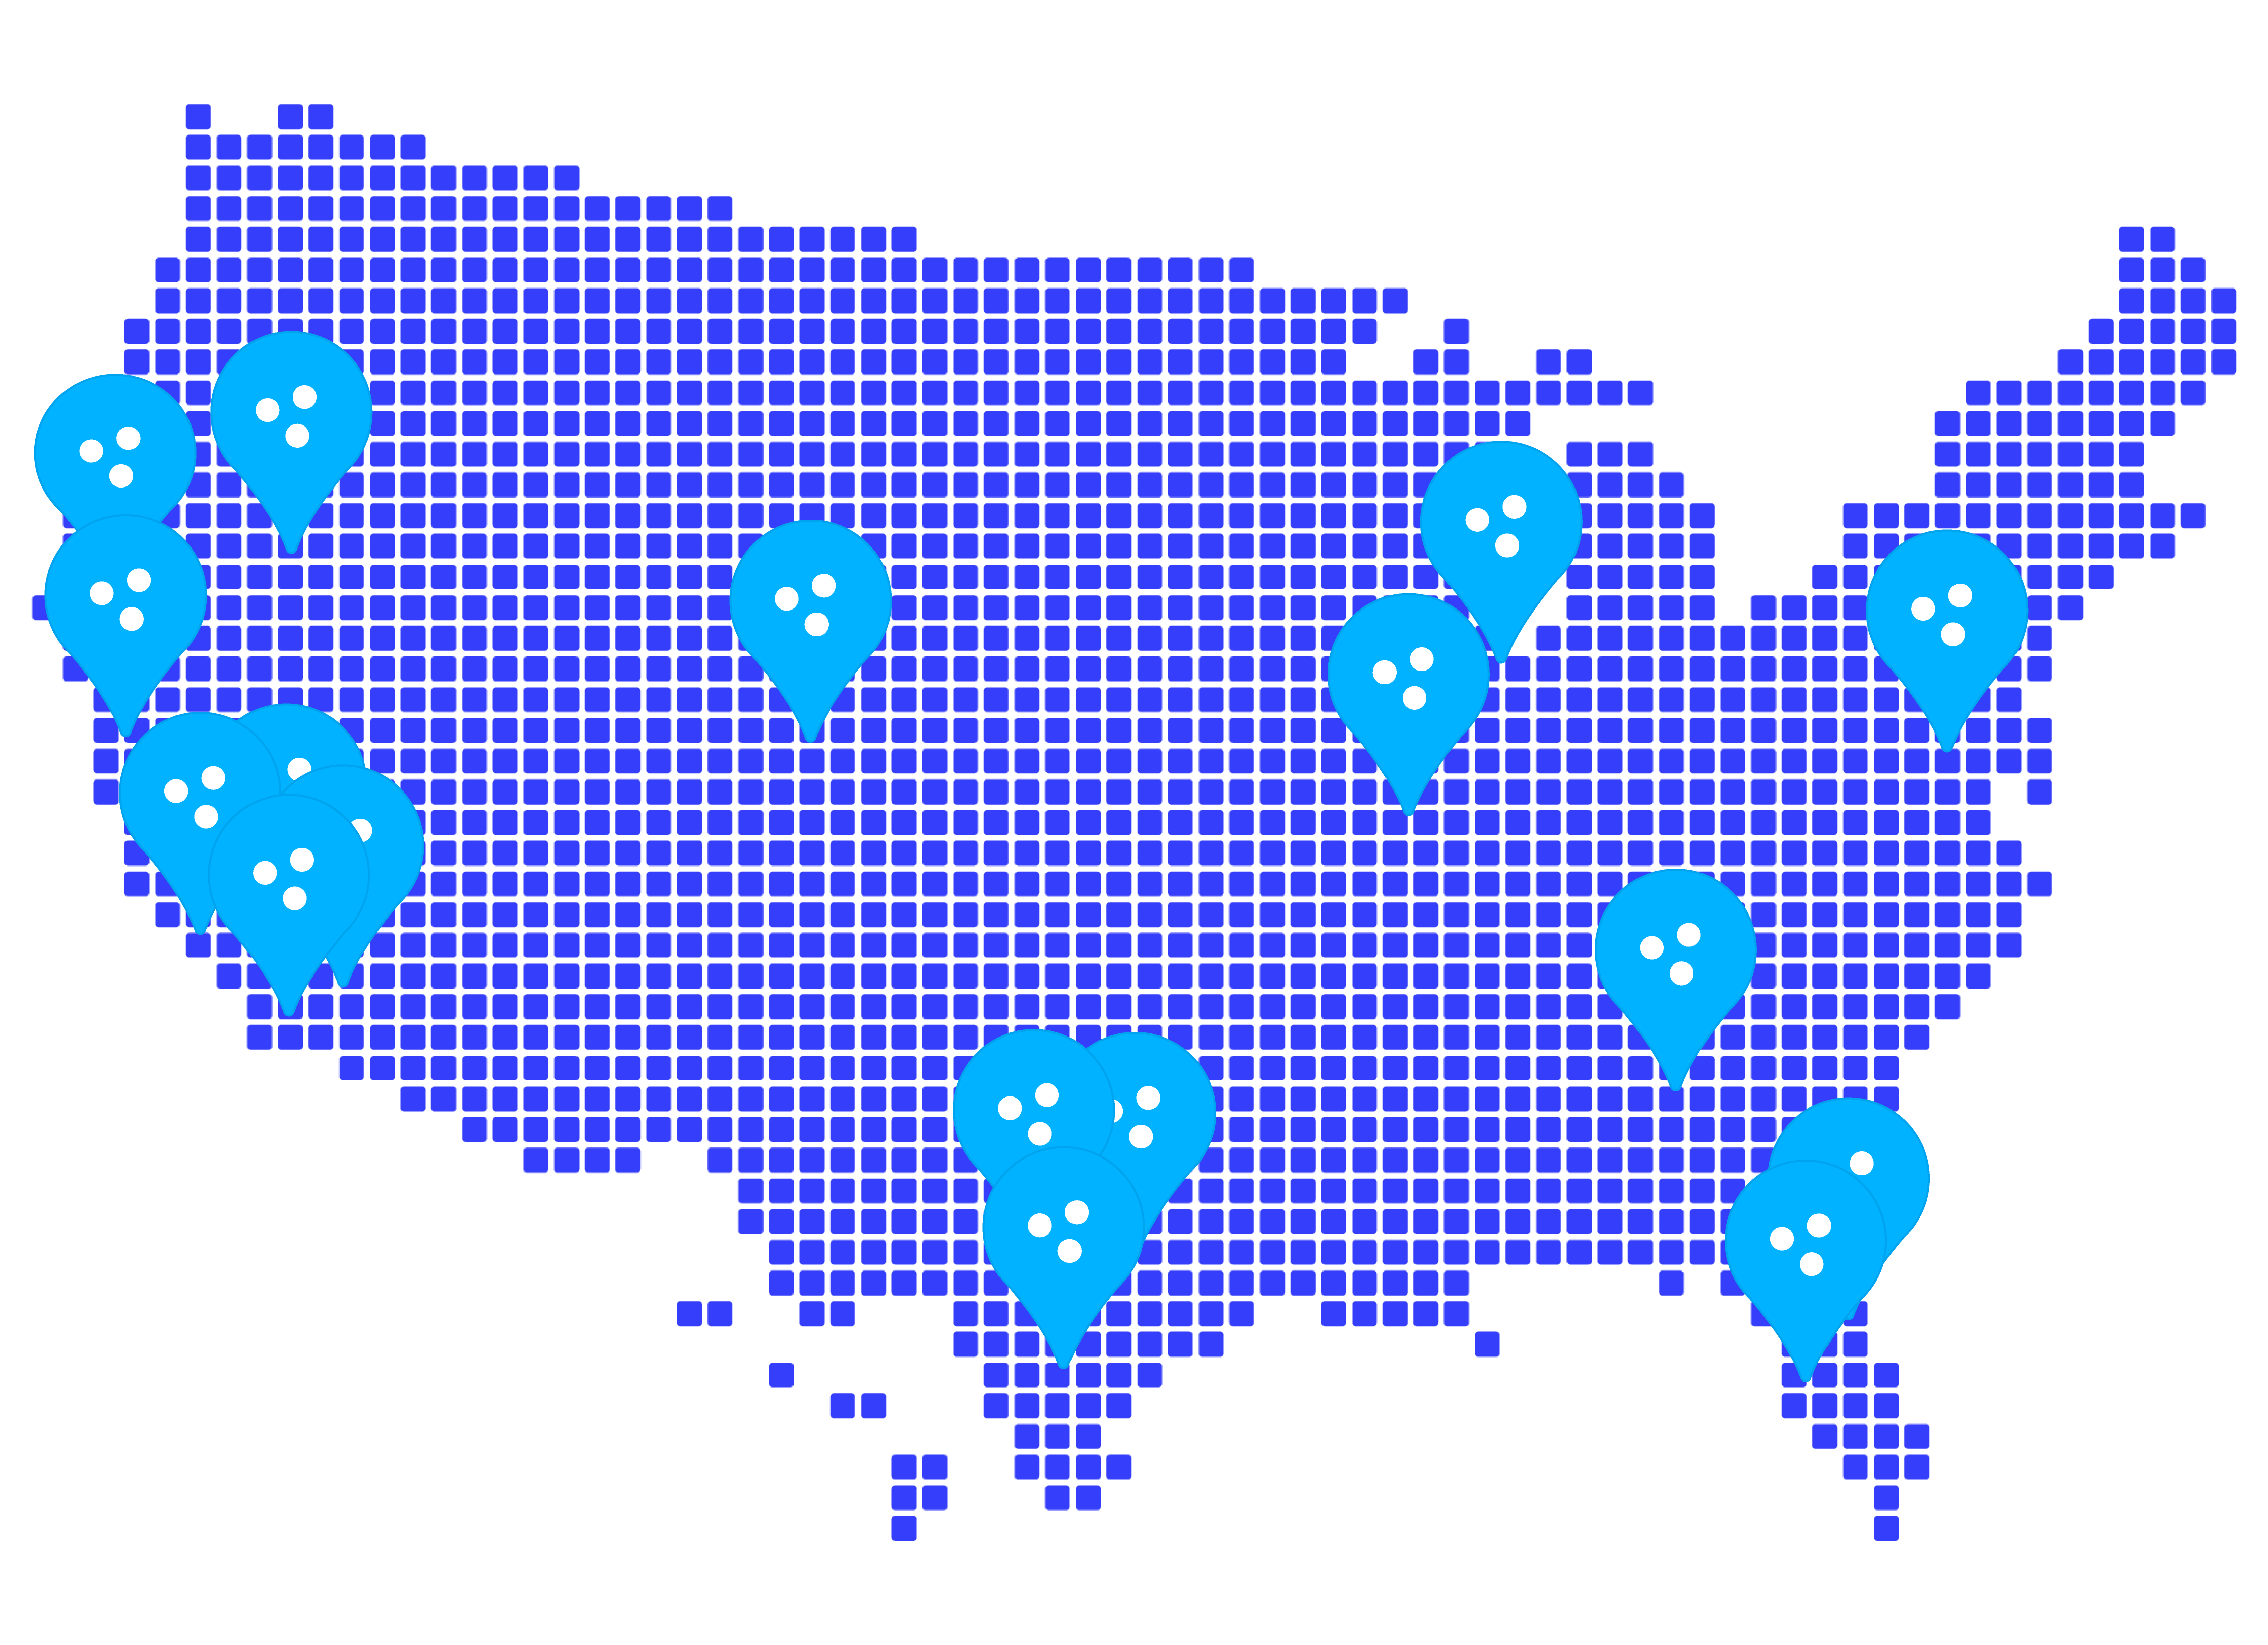 Bluecrew serves regions across the United States with qualified staffing technology and payroll services